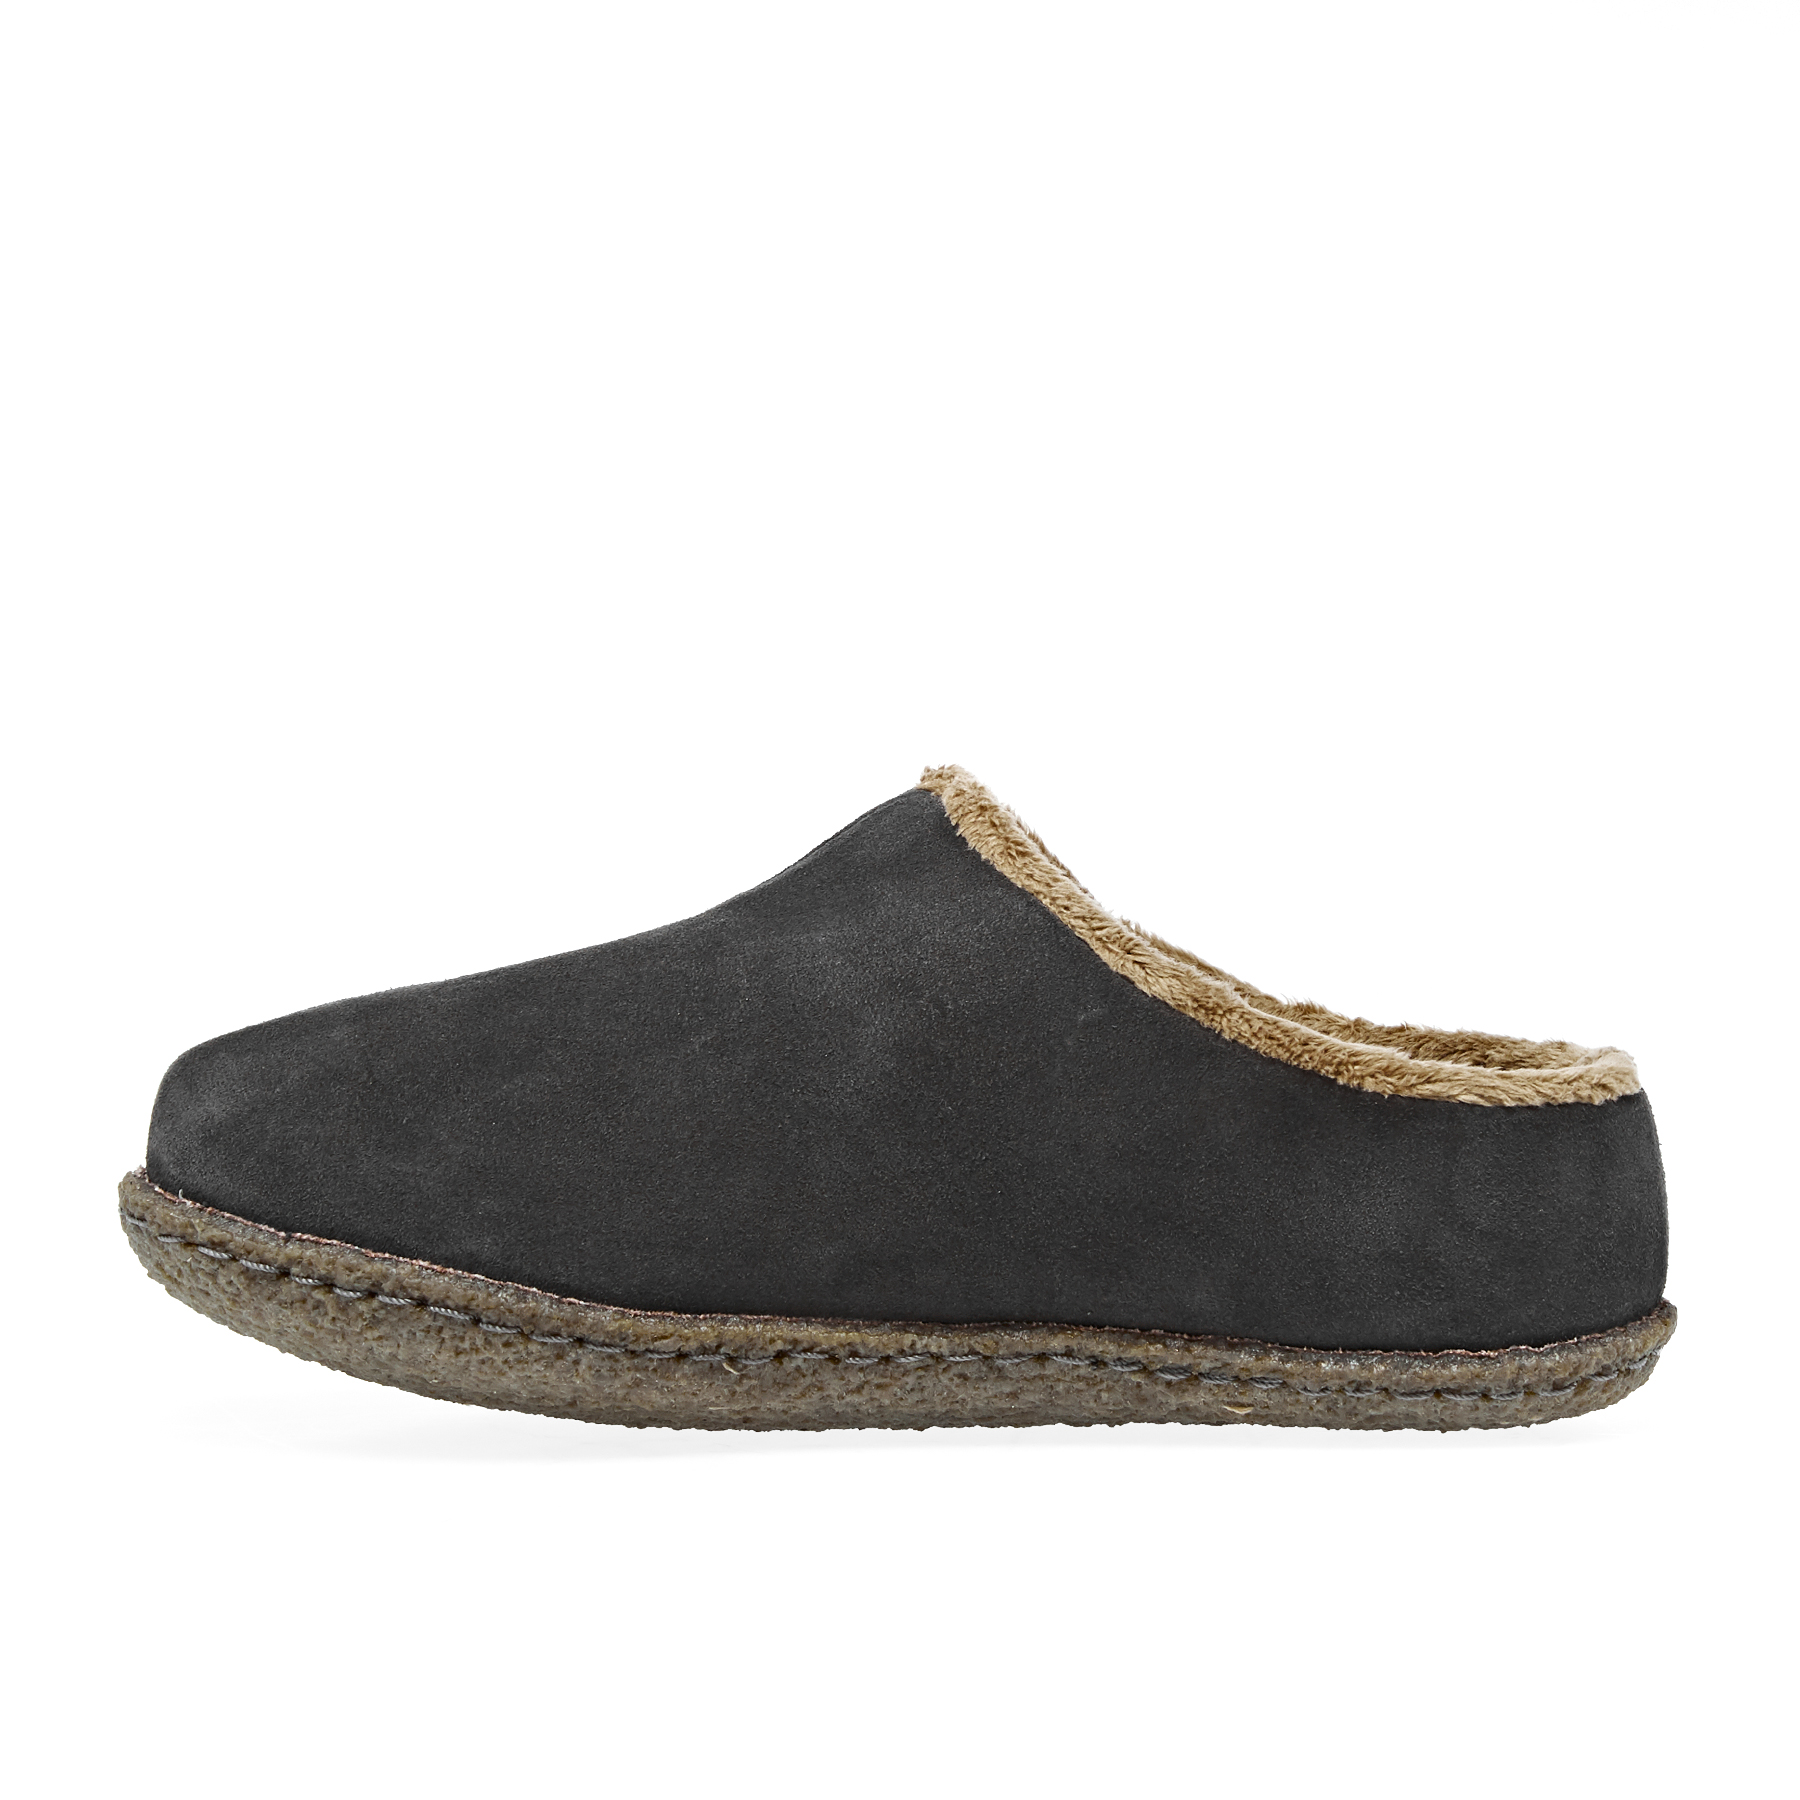 SOREL Youth Falcon Ridge II Suede Slippers with Fleece Lining for Kids